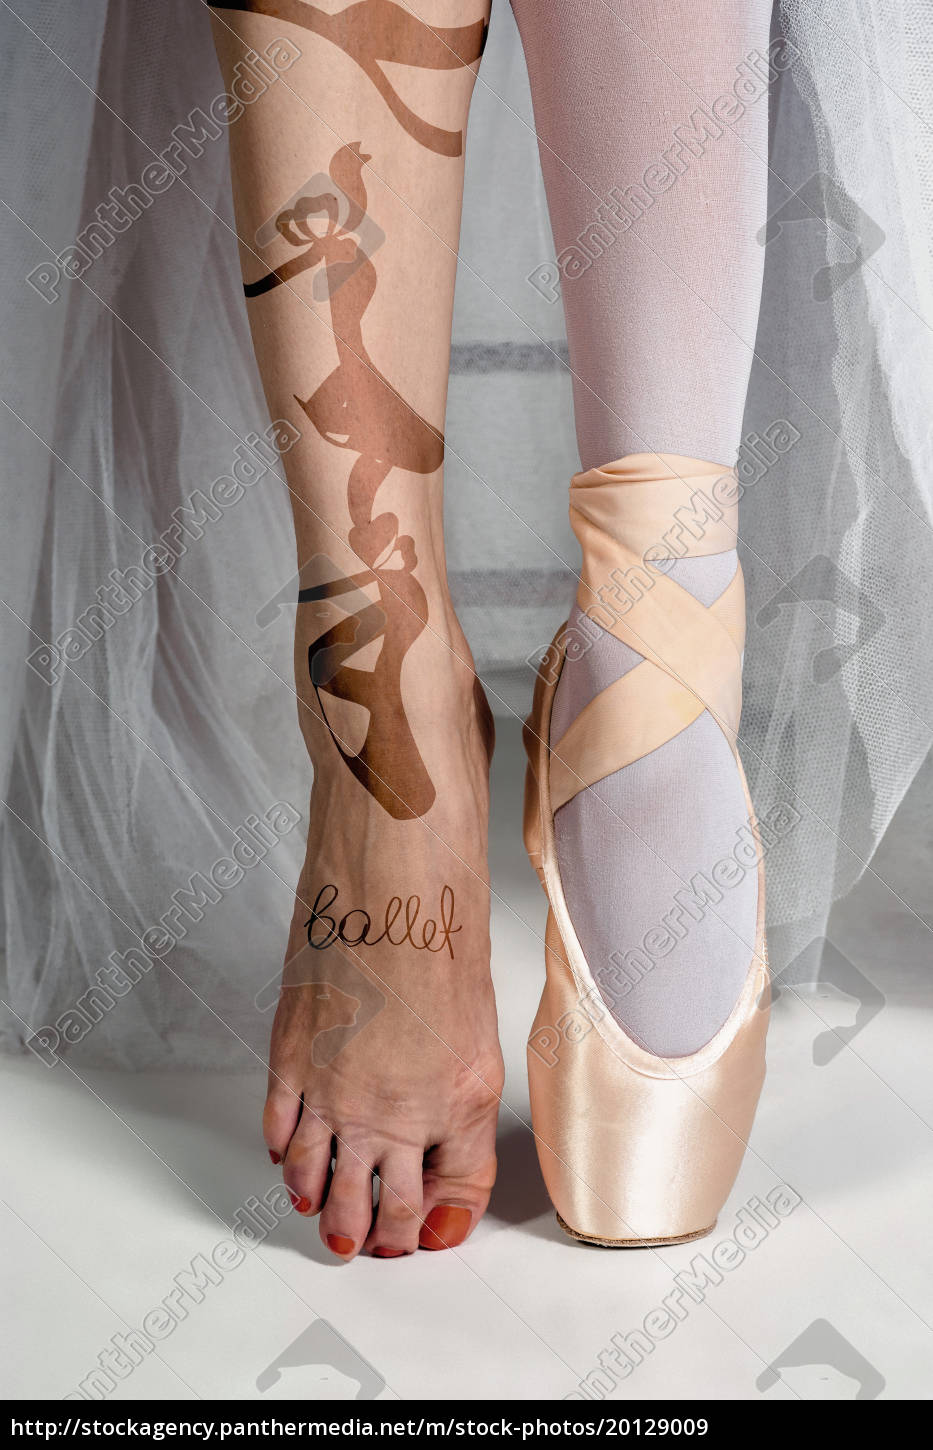 the, close-up, feet, of, young, ballerina - 20129009